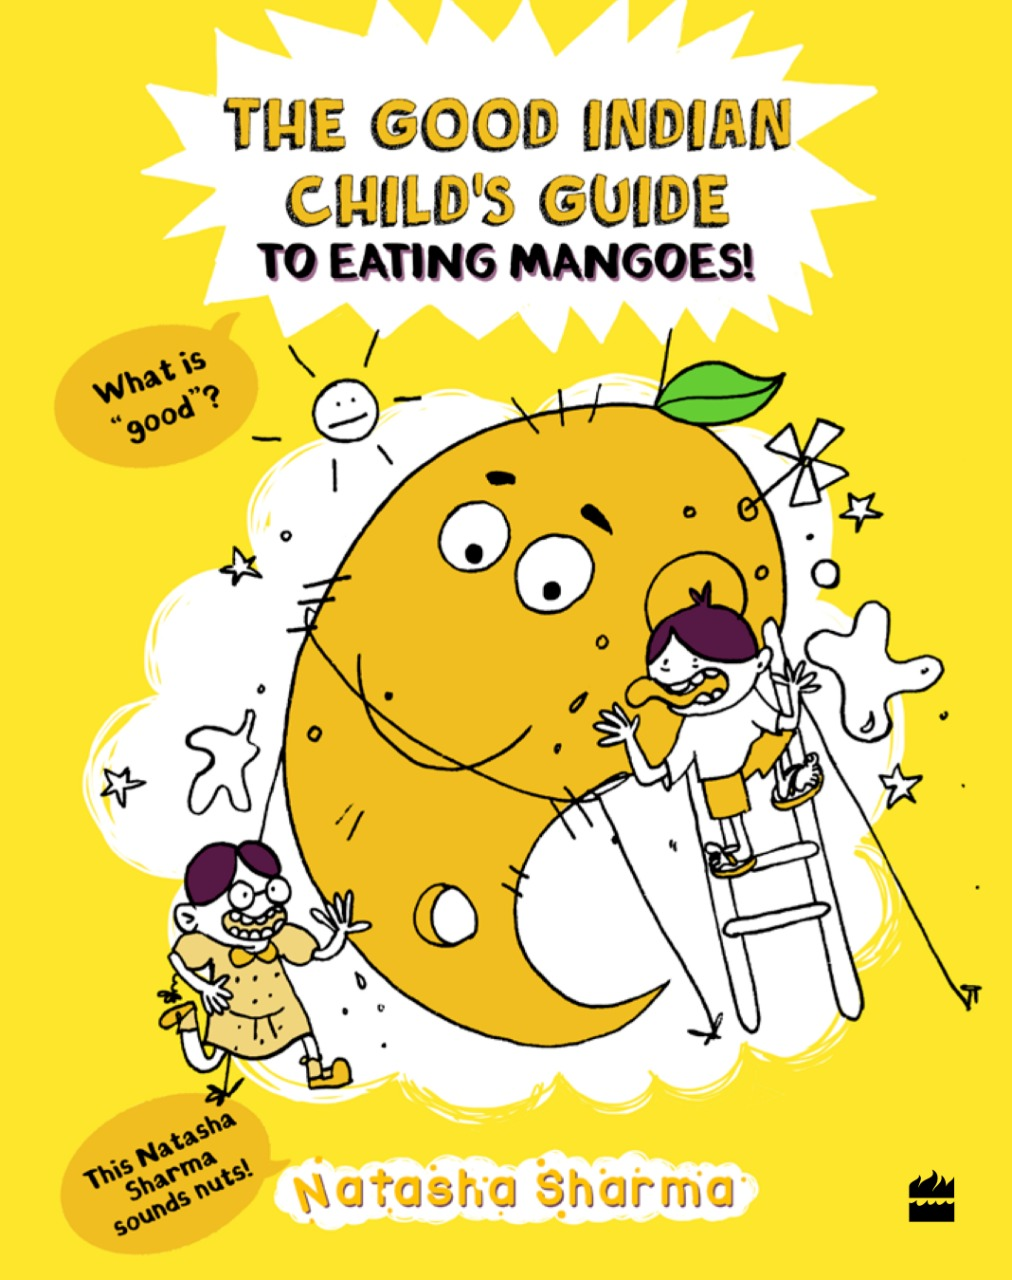 The Good Indian Childs Guide to Eating Mangoes by Natasha Sharma